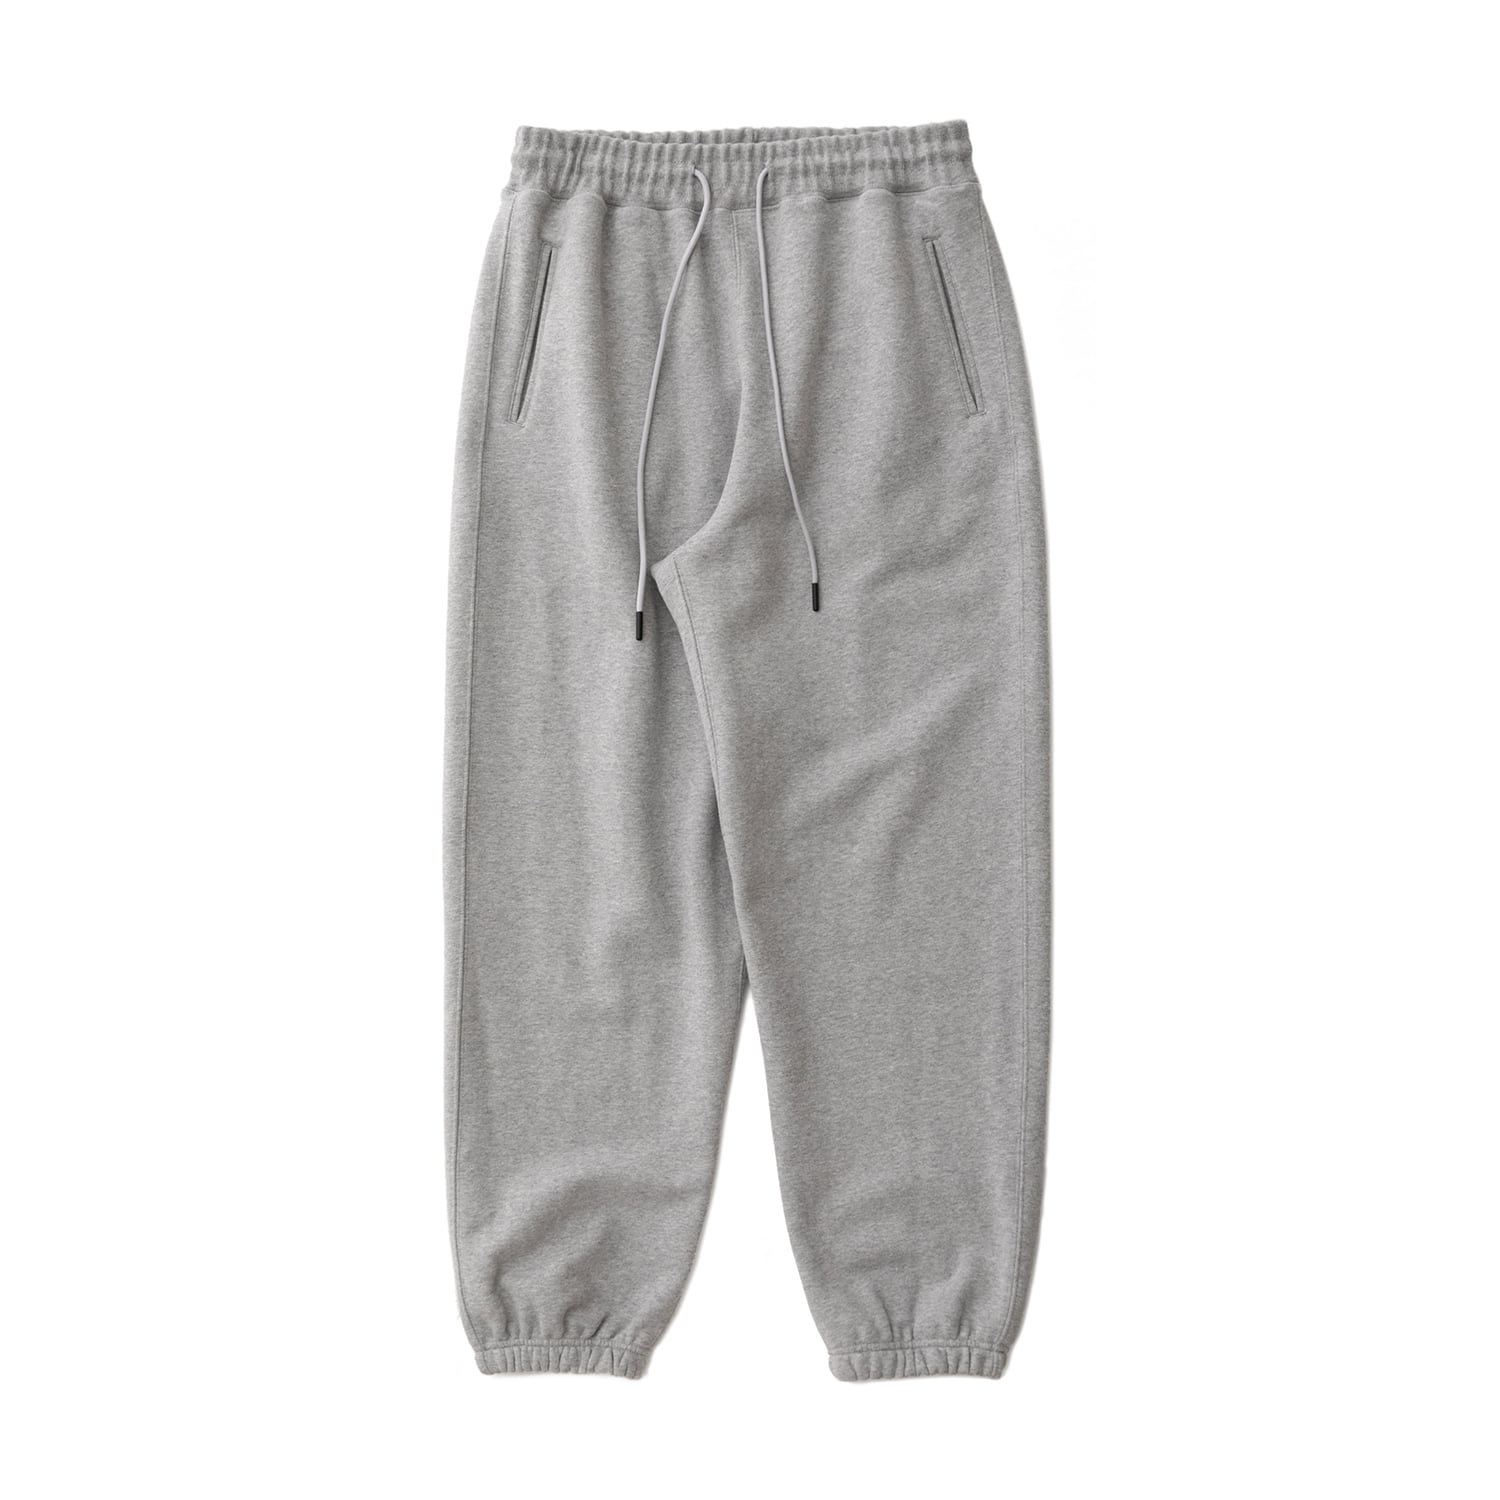 21SS Swallow Gymnasium Sweat Pants (Heather Gray)